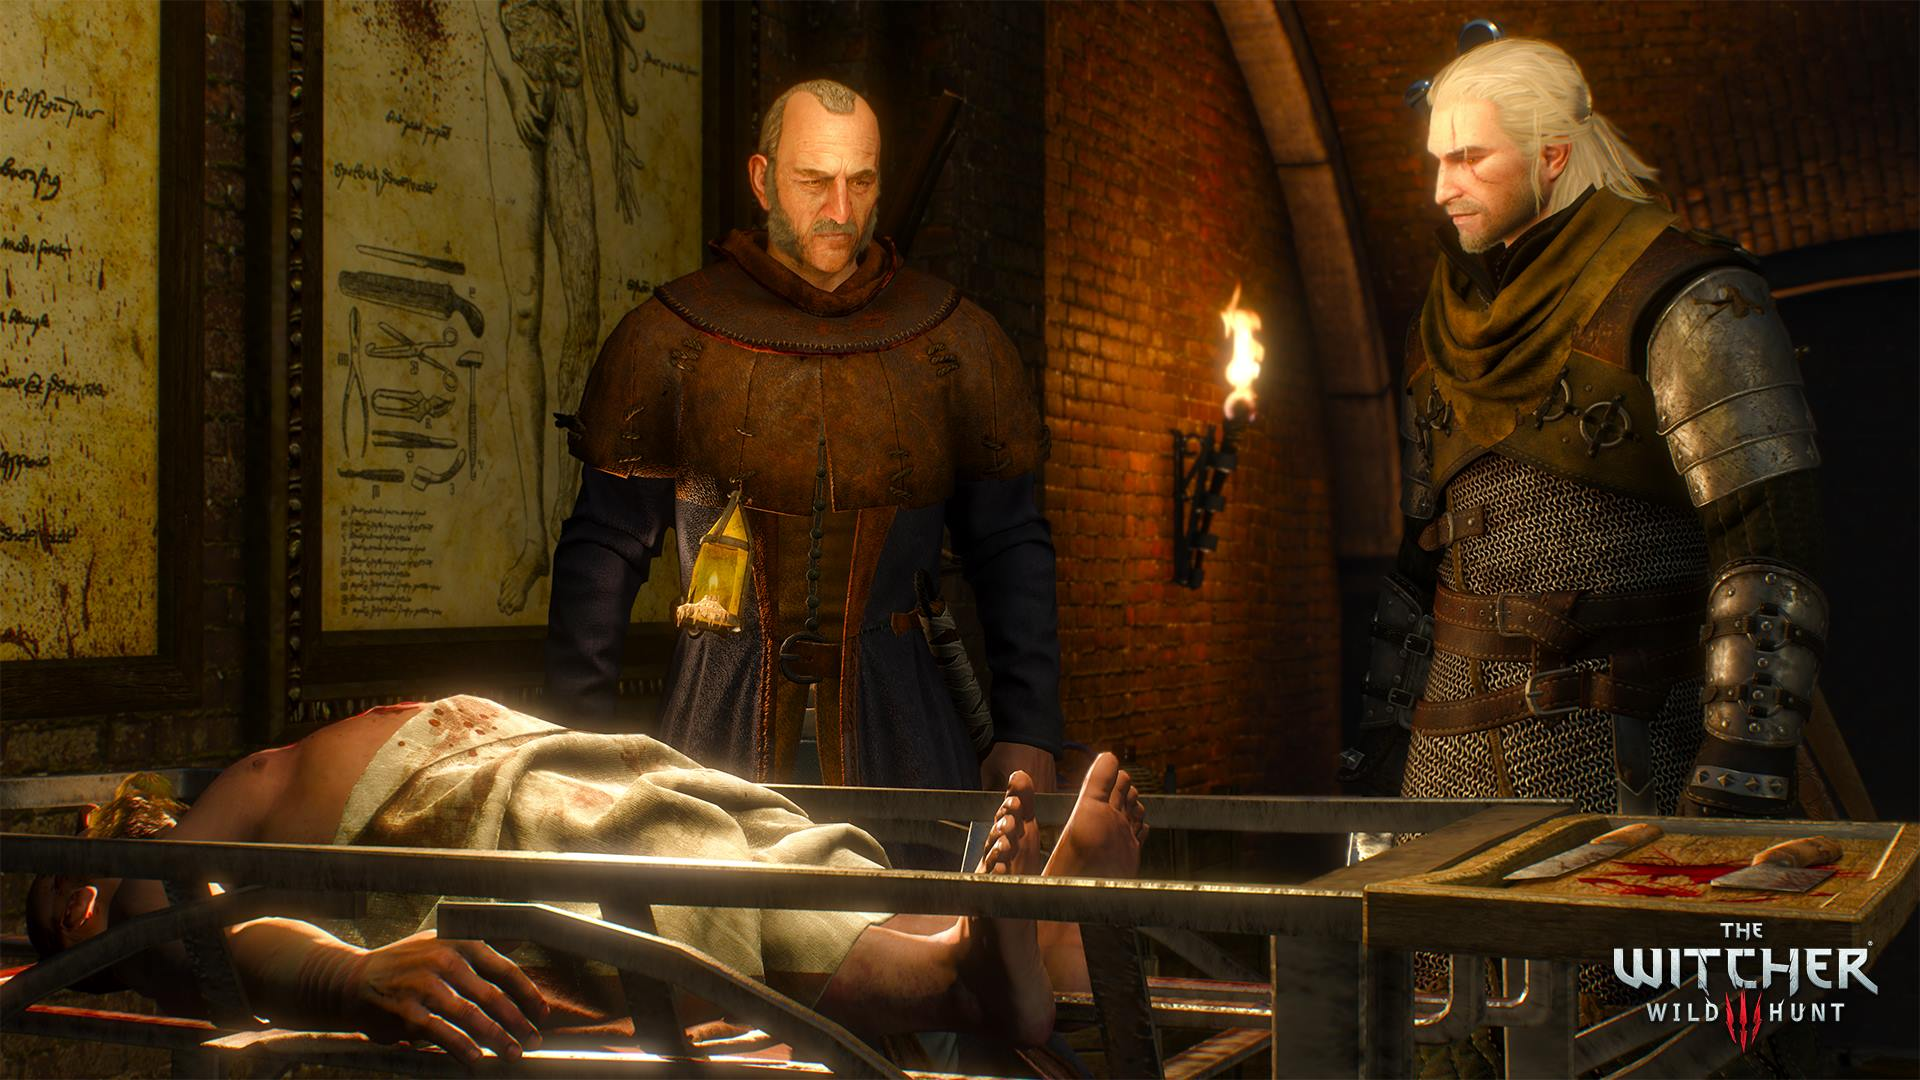 The Witcher 3 27-03